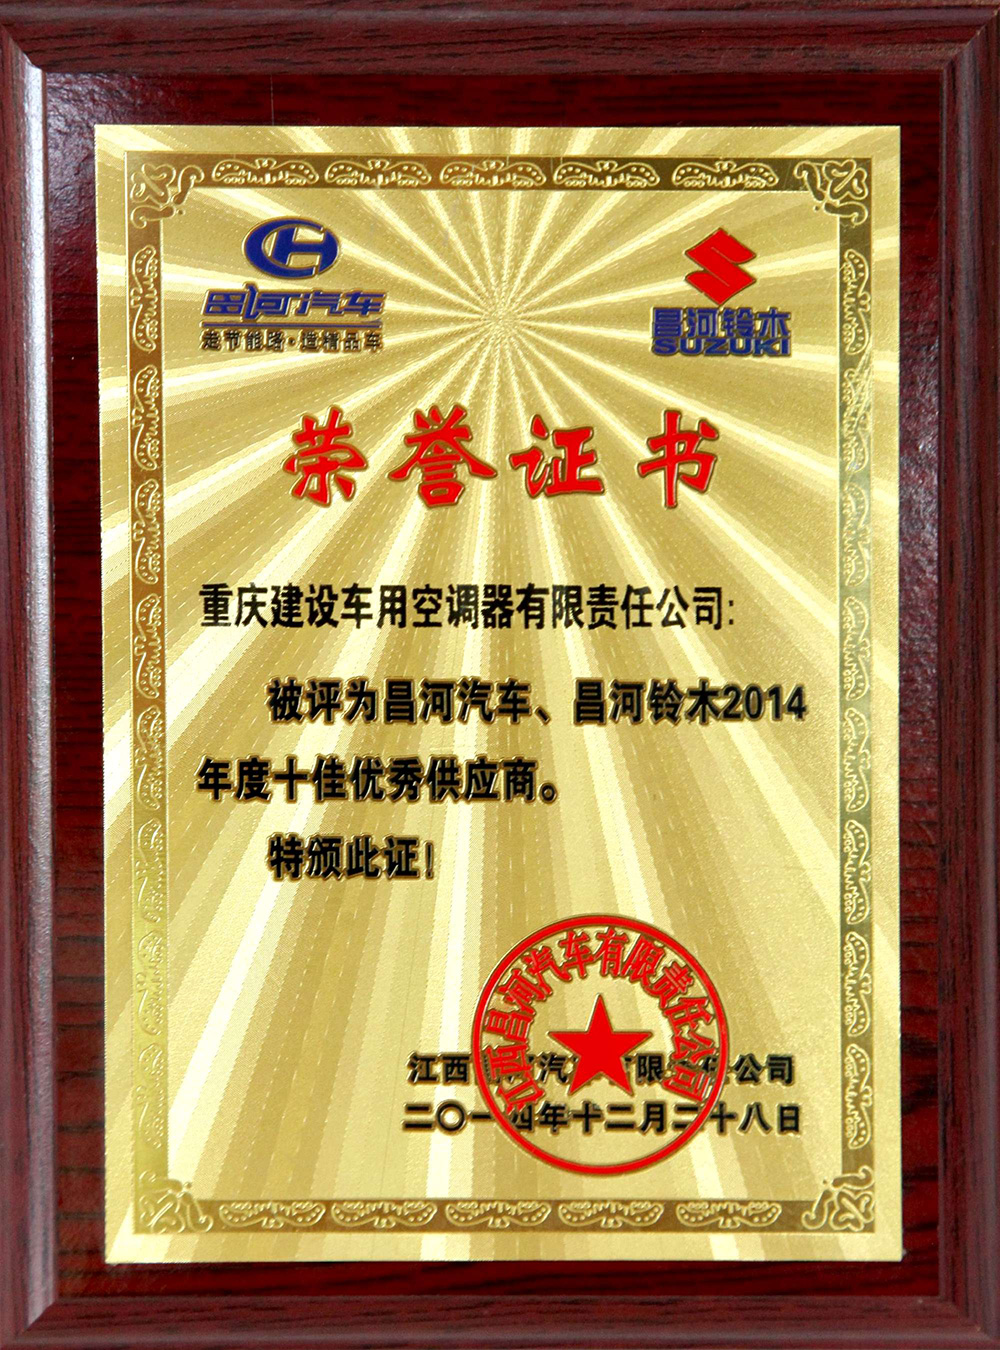 2014 Top 10 Outstanding Suppliers of Changhe Automobile and Changhe Suzuki Automobile